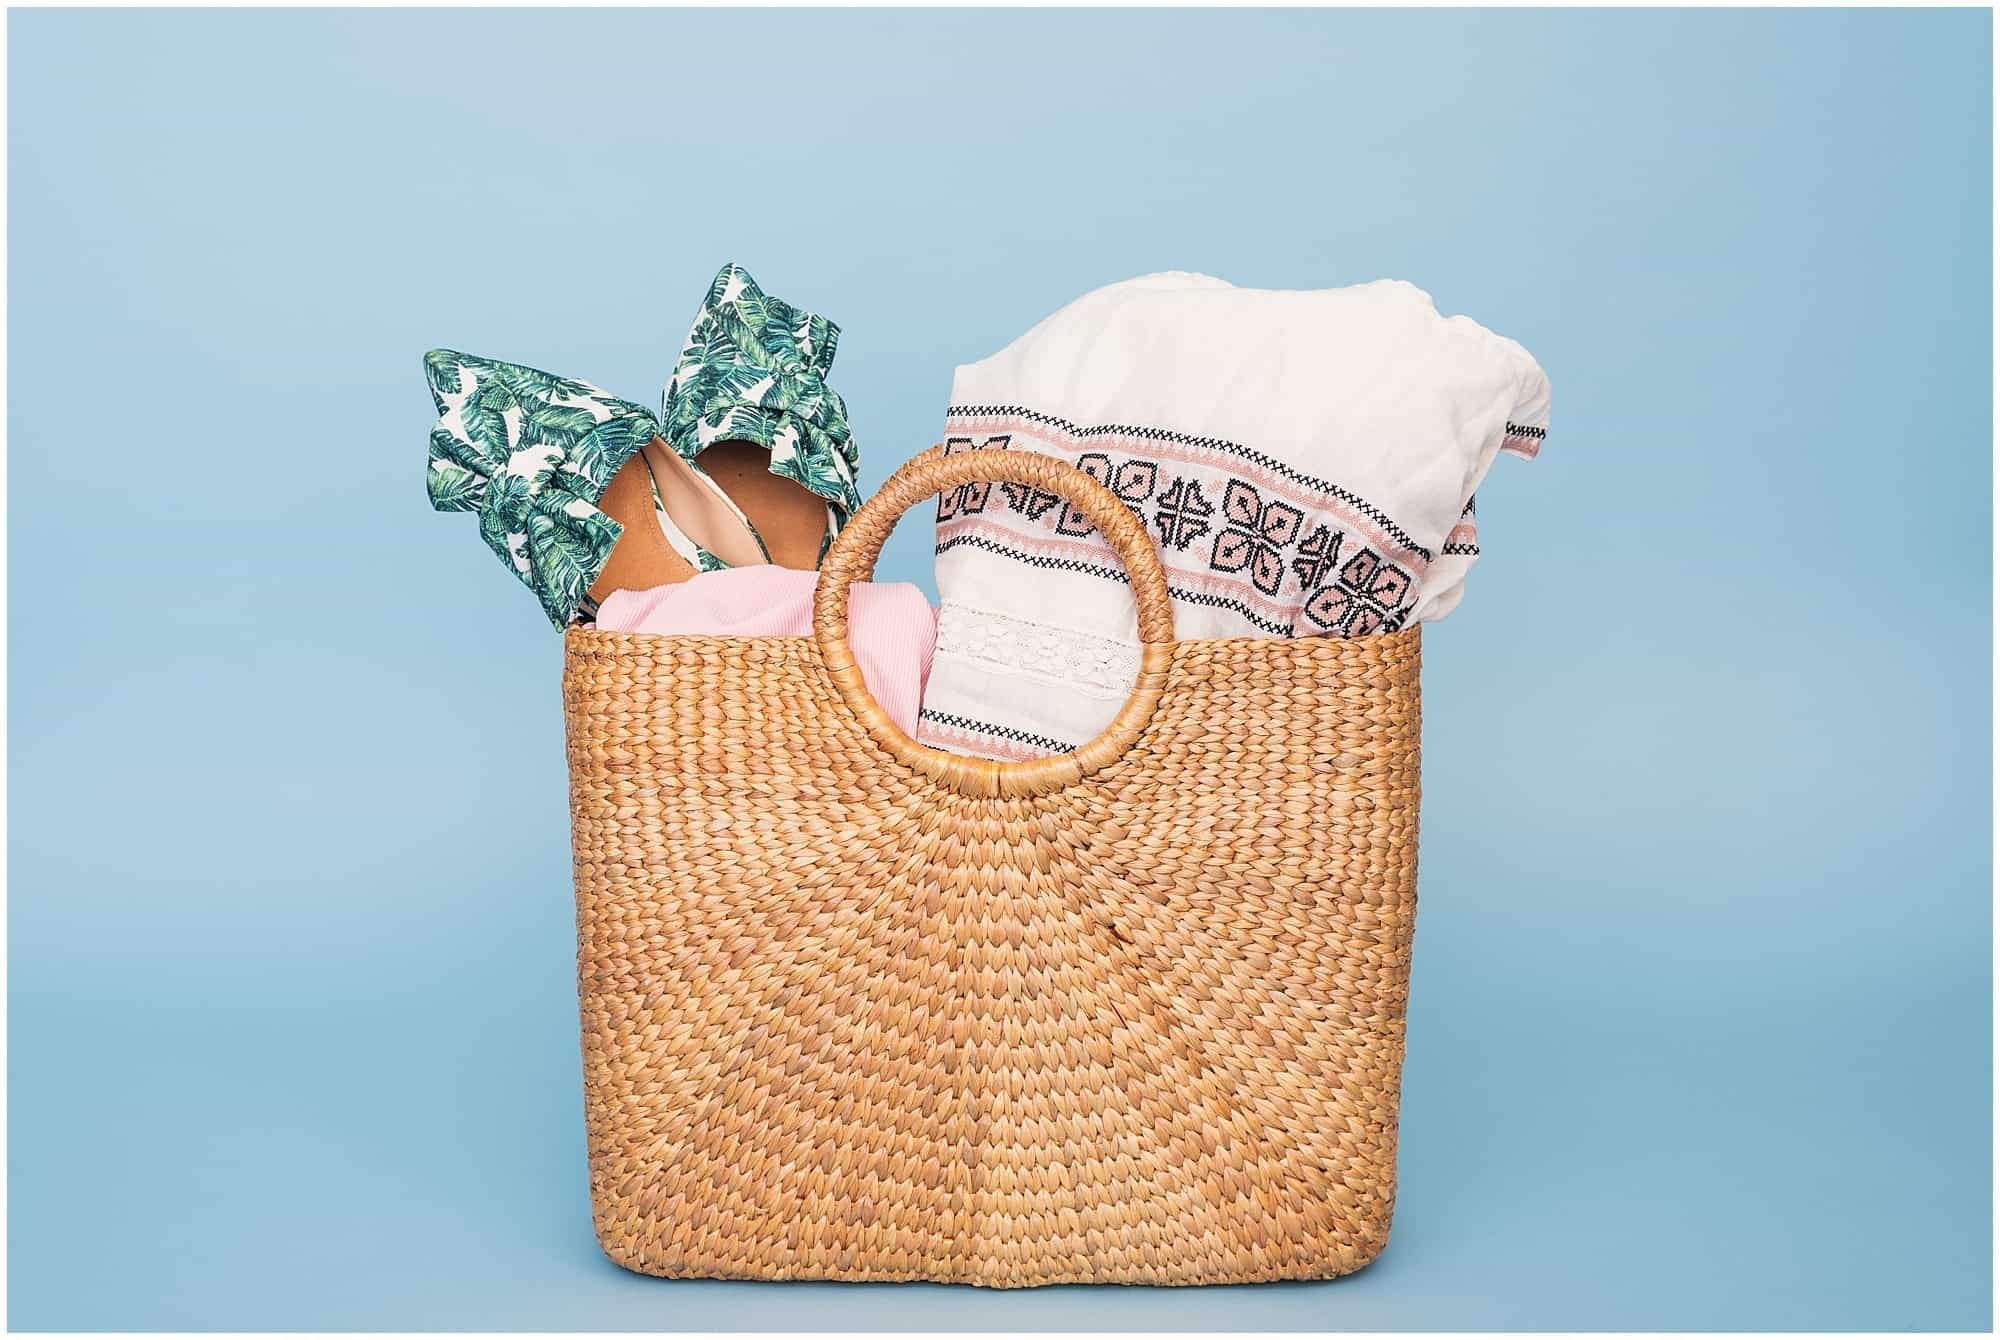 Travel checklist luggage wicker basket